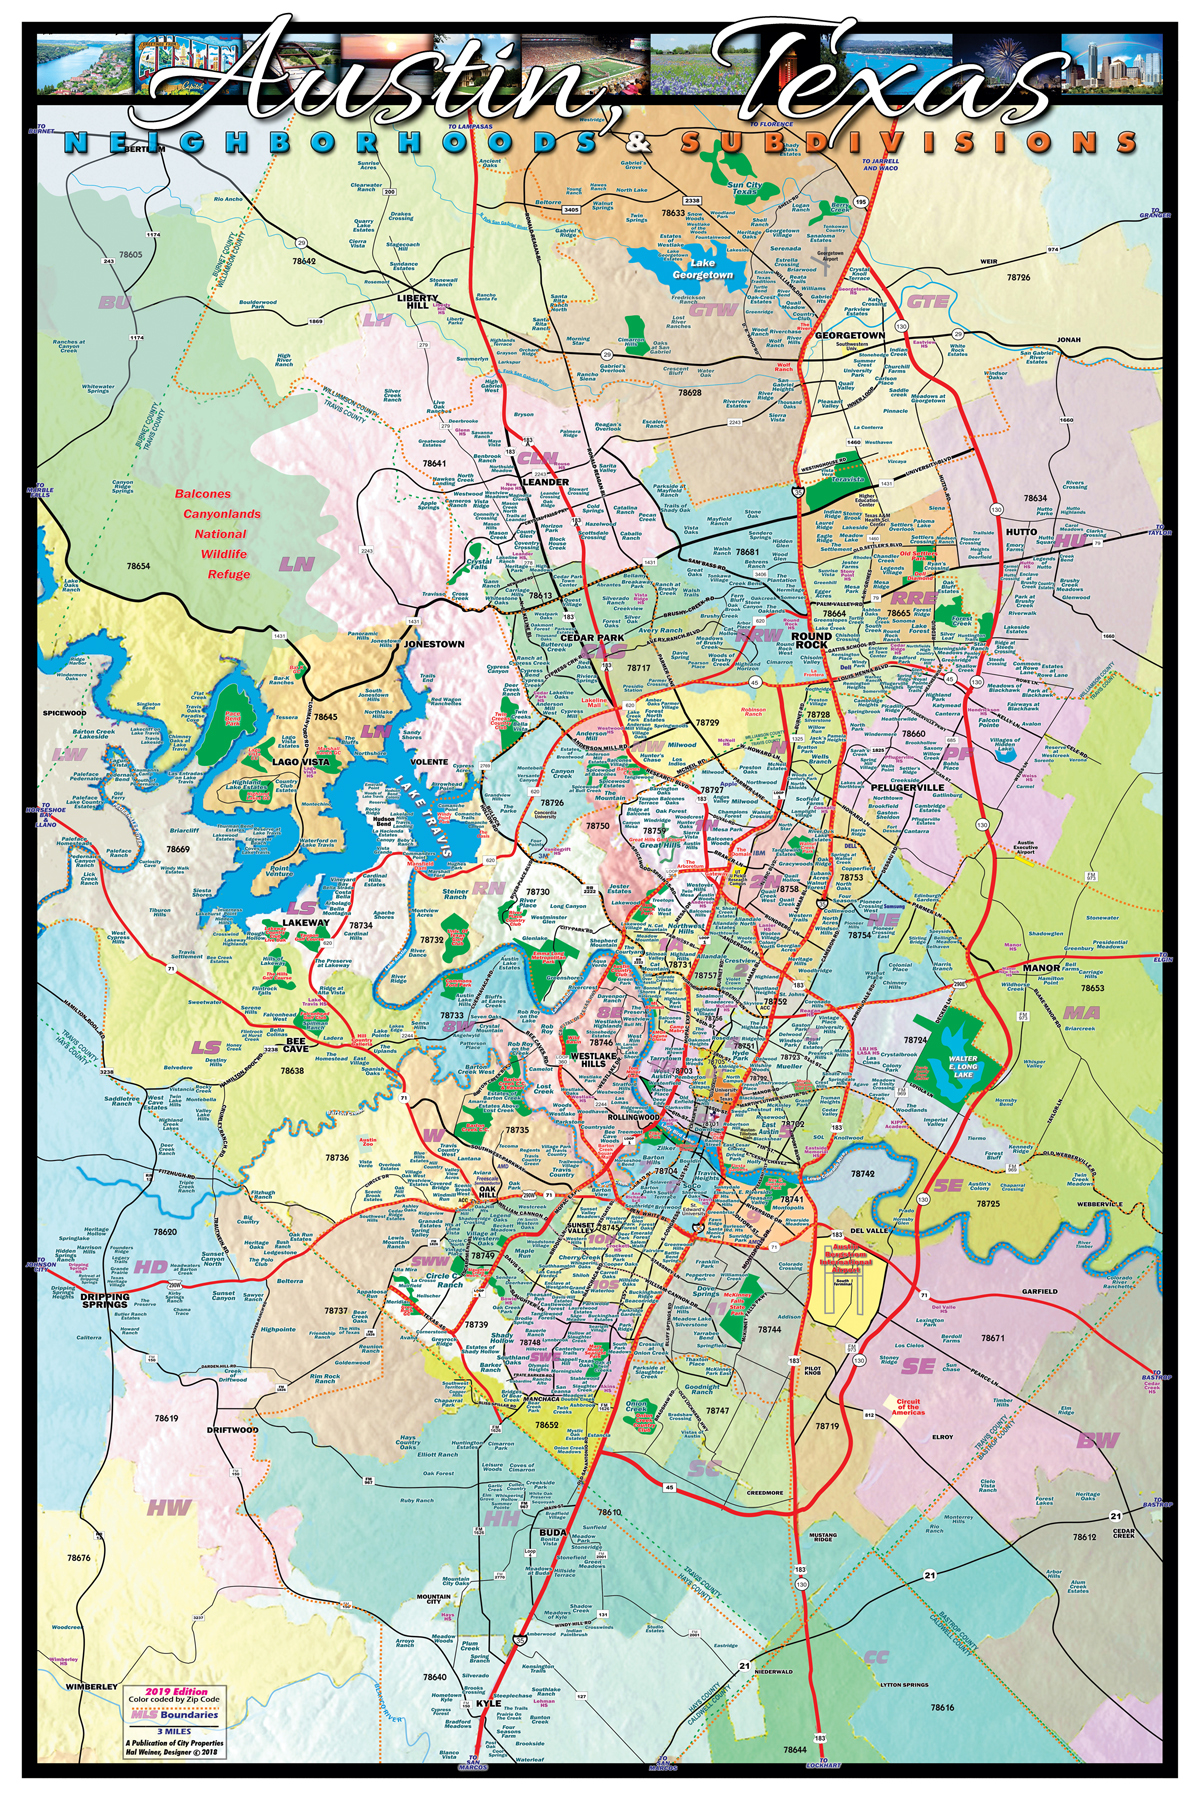 Austin Subdivision Map - Over 800 Neighborhoods And Subdivisions - Austin Texas City Map